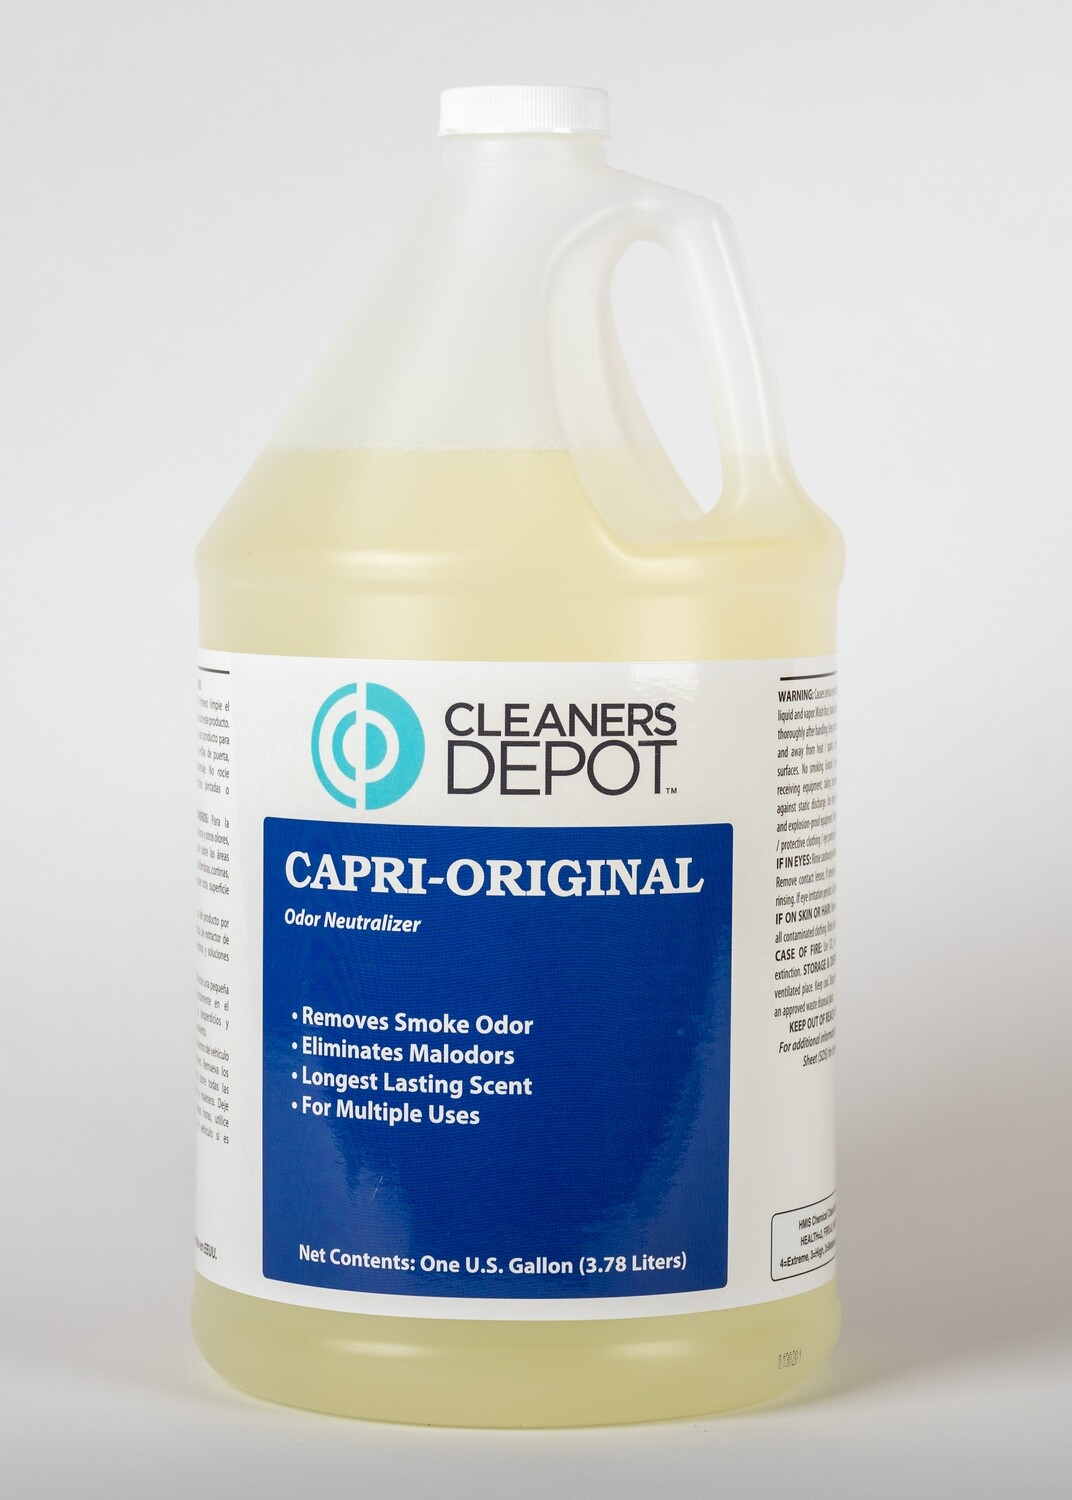 Capri - The Cleaner's Depot (Gallon) by MidLab | Citrus Deodorizer